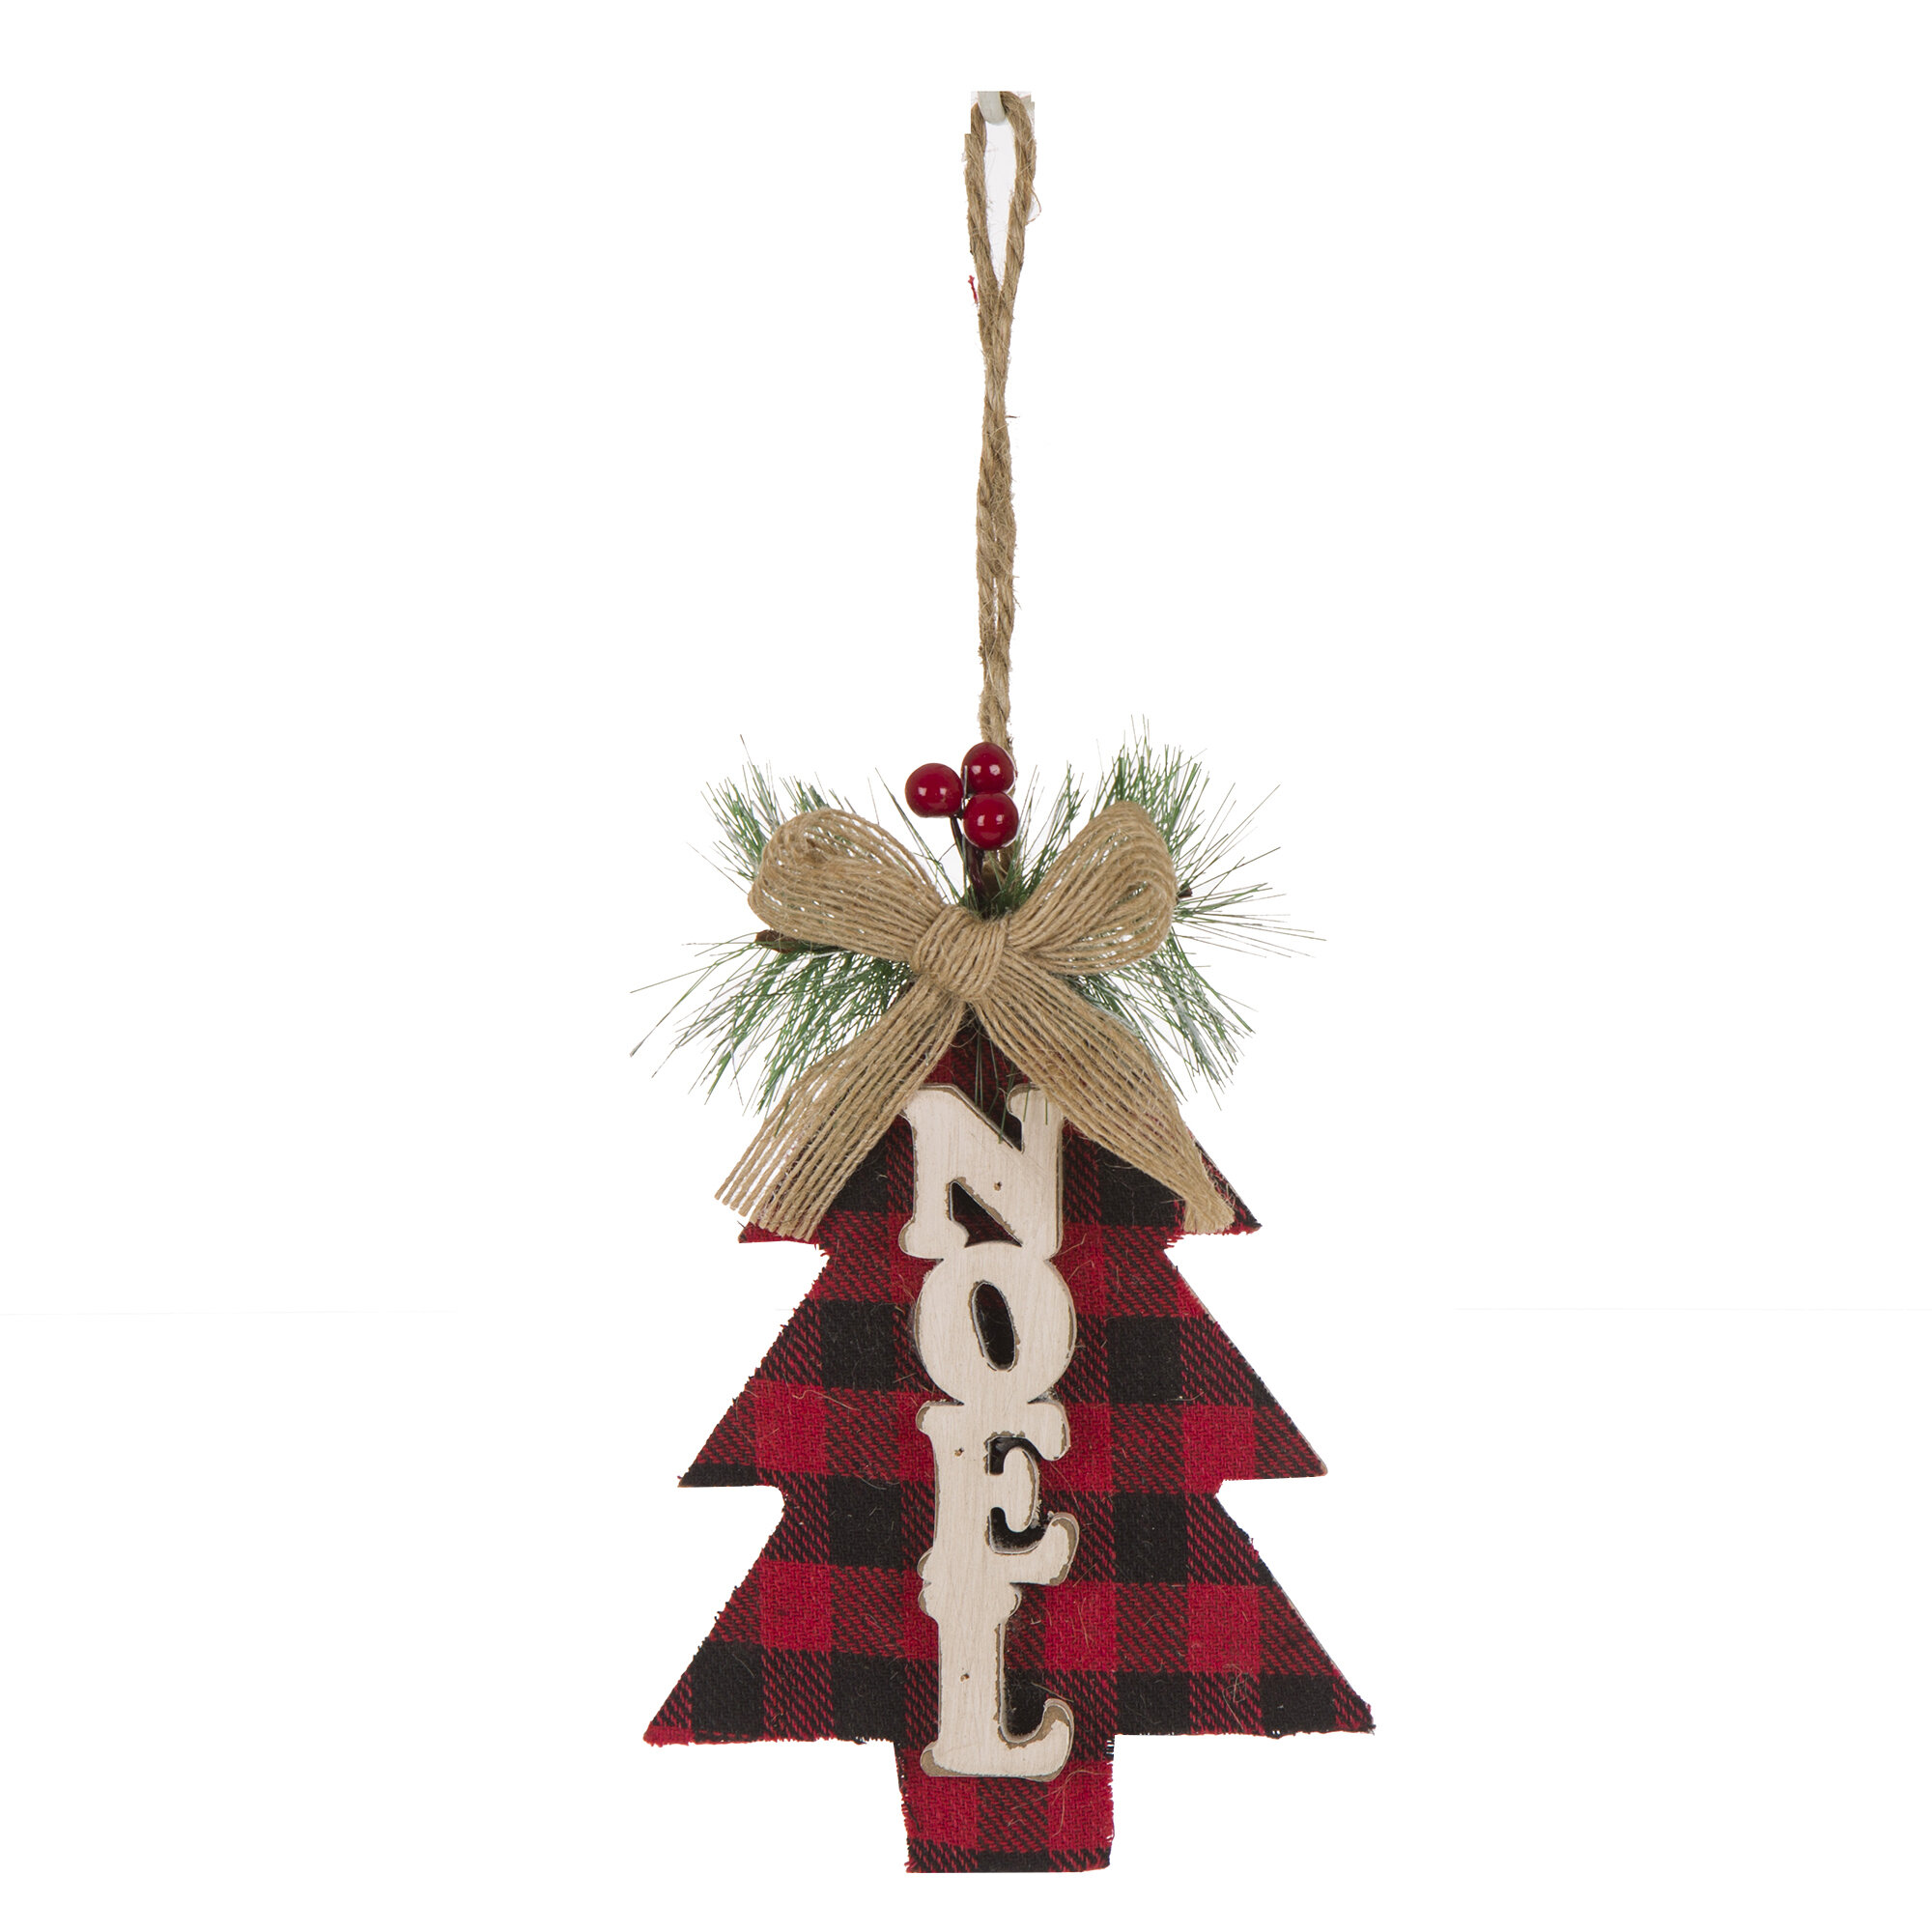 The Holiday Aisle \'Noel\' Wooden Tree Shaped Ornament & Reviews | Wayfair